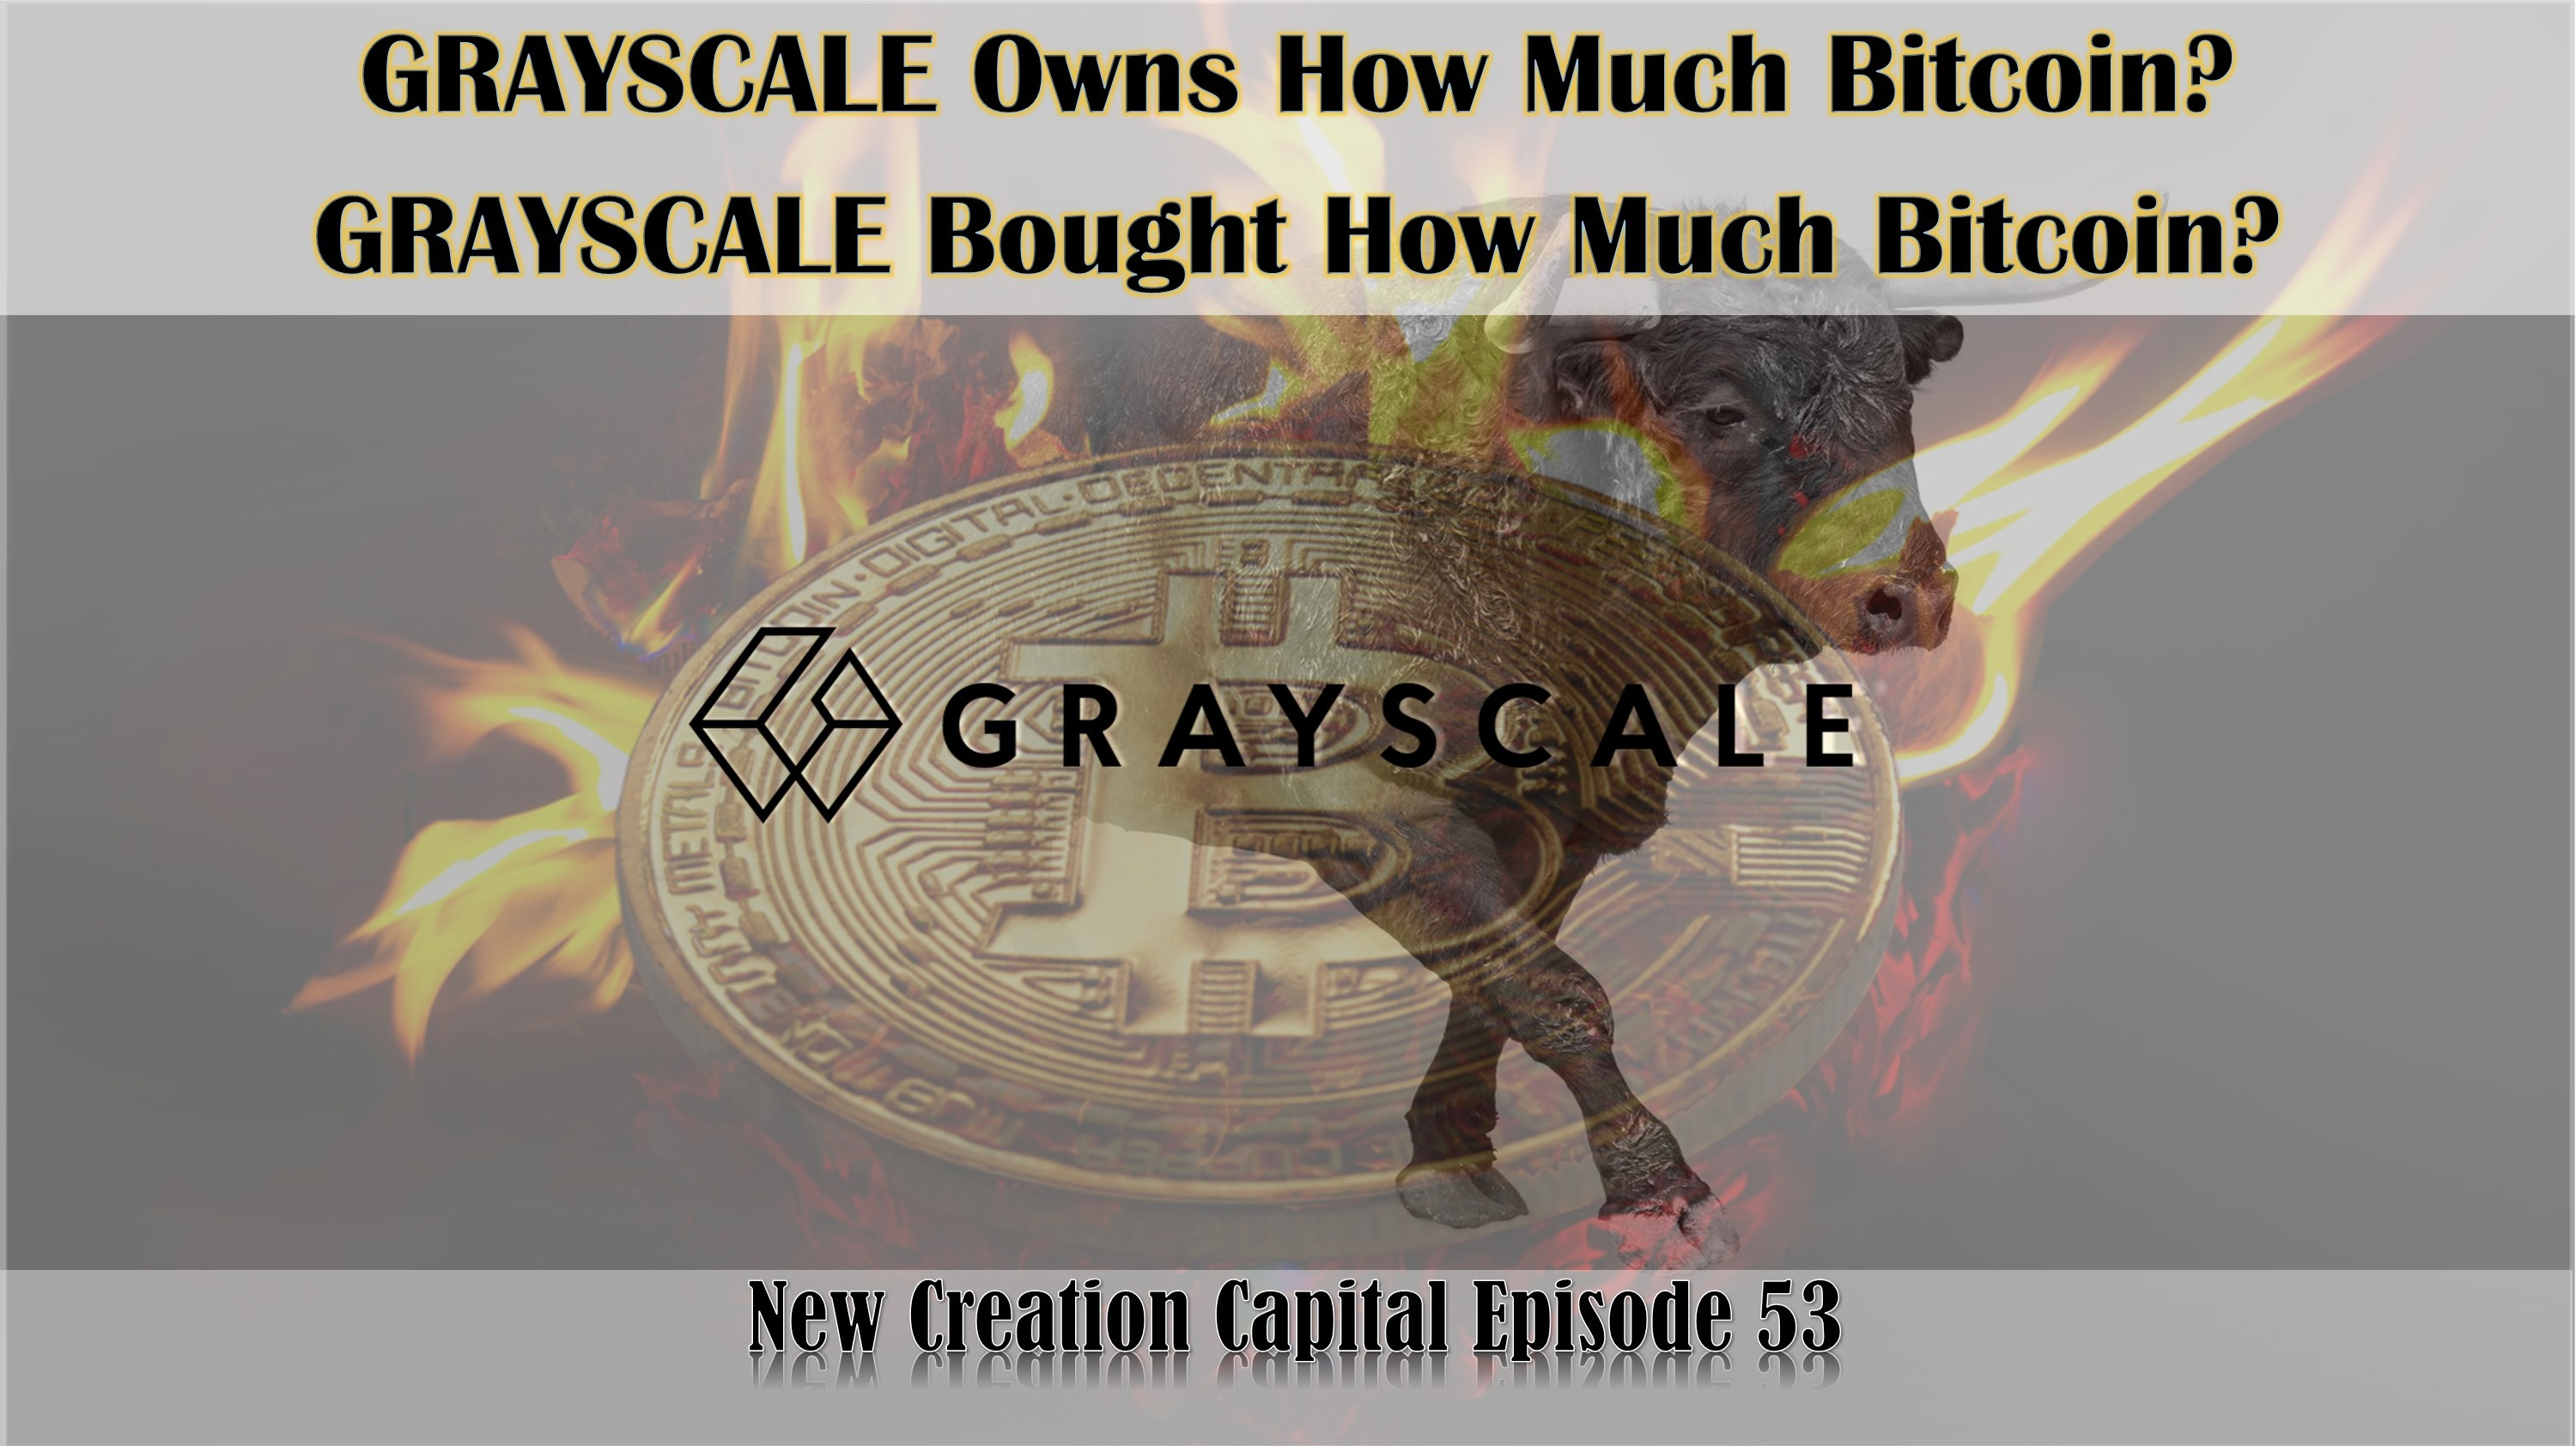 Episode 53: GRAYSCALE Bought How Much Bitcoin? GRAYSCALE Owns How much Bitcoin?